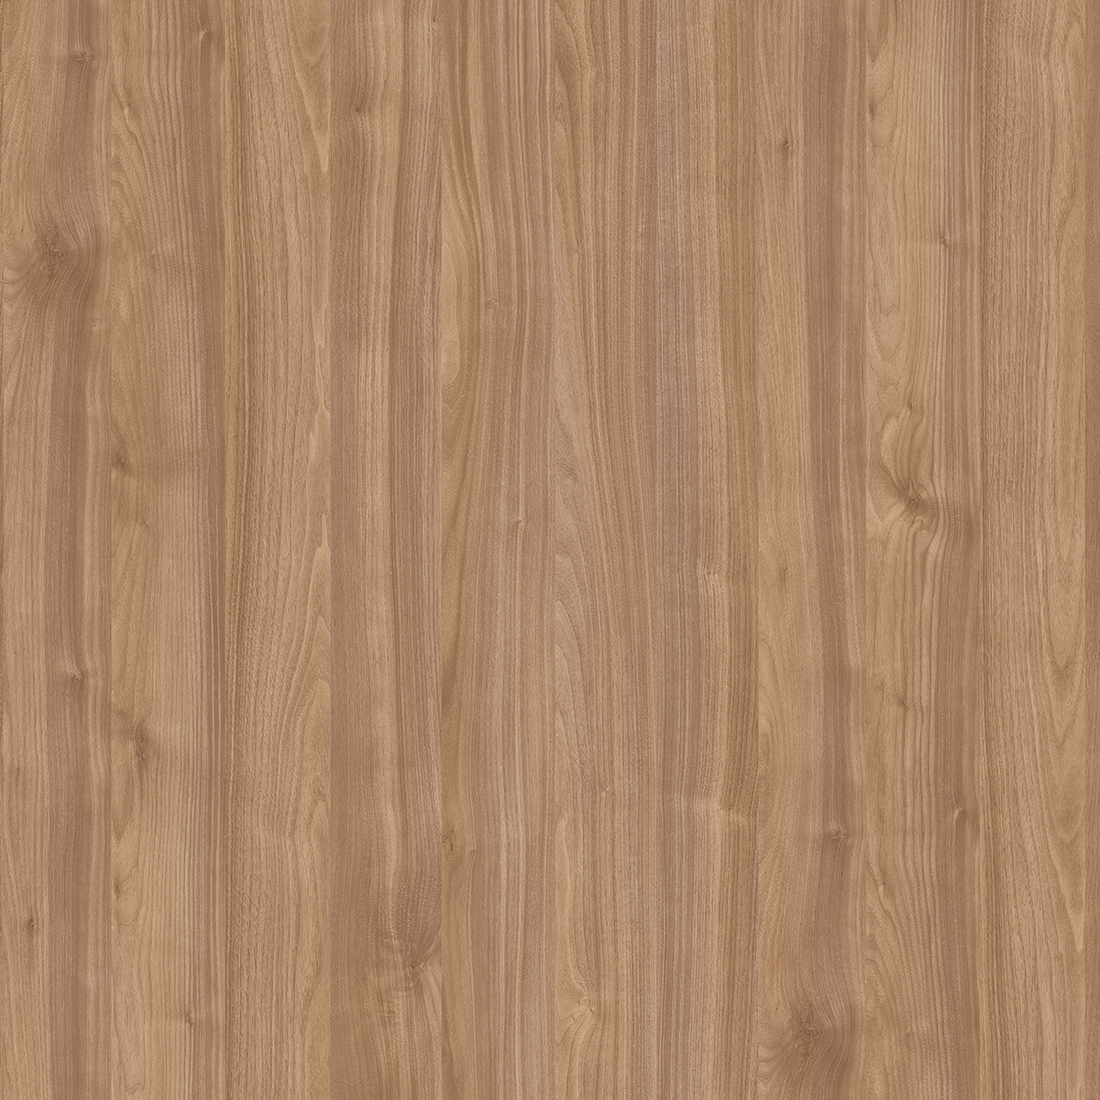 Light Select Walnut